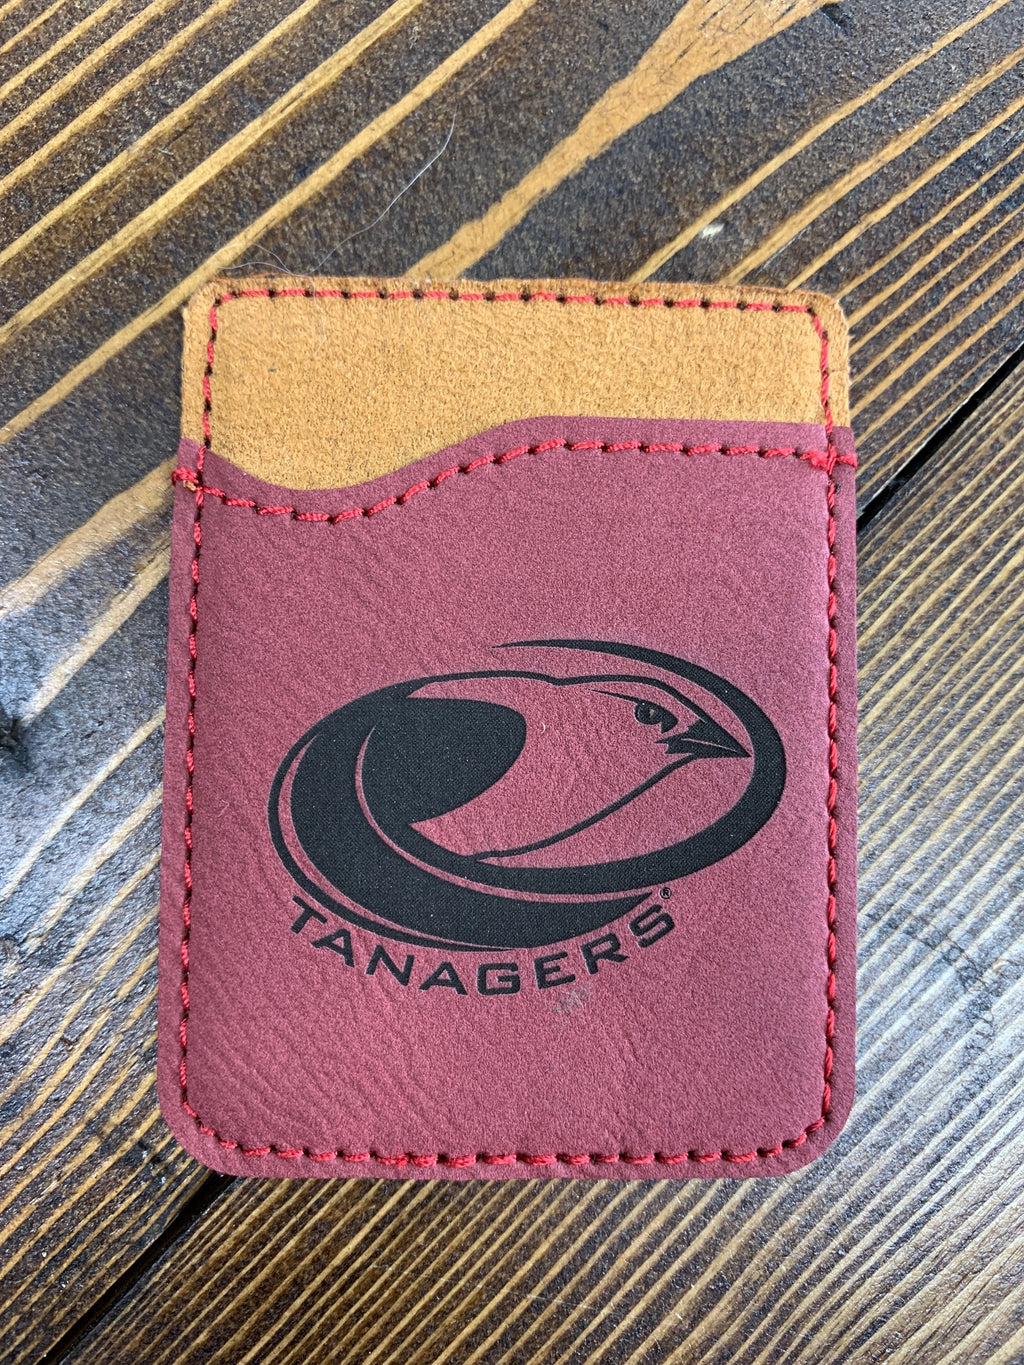 Red leather card holder Tanagers logo